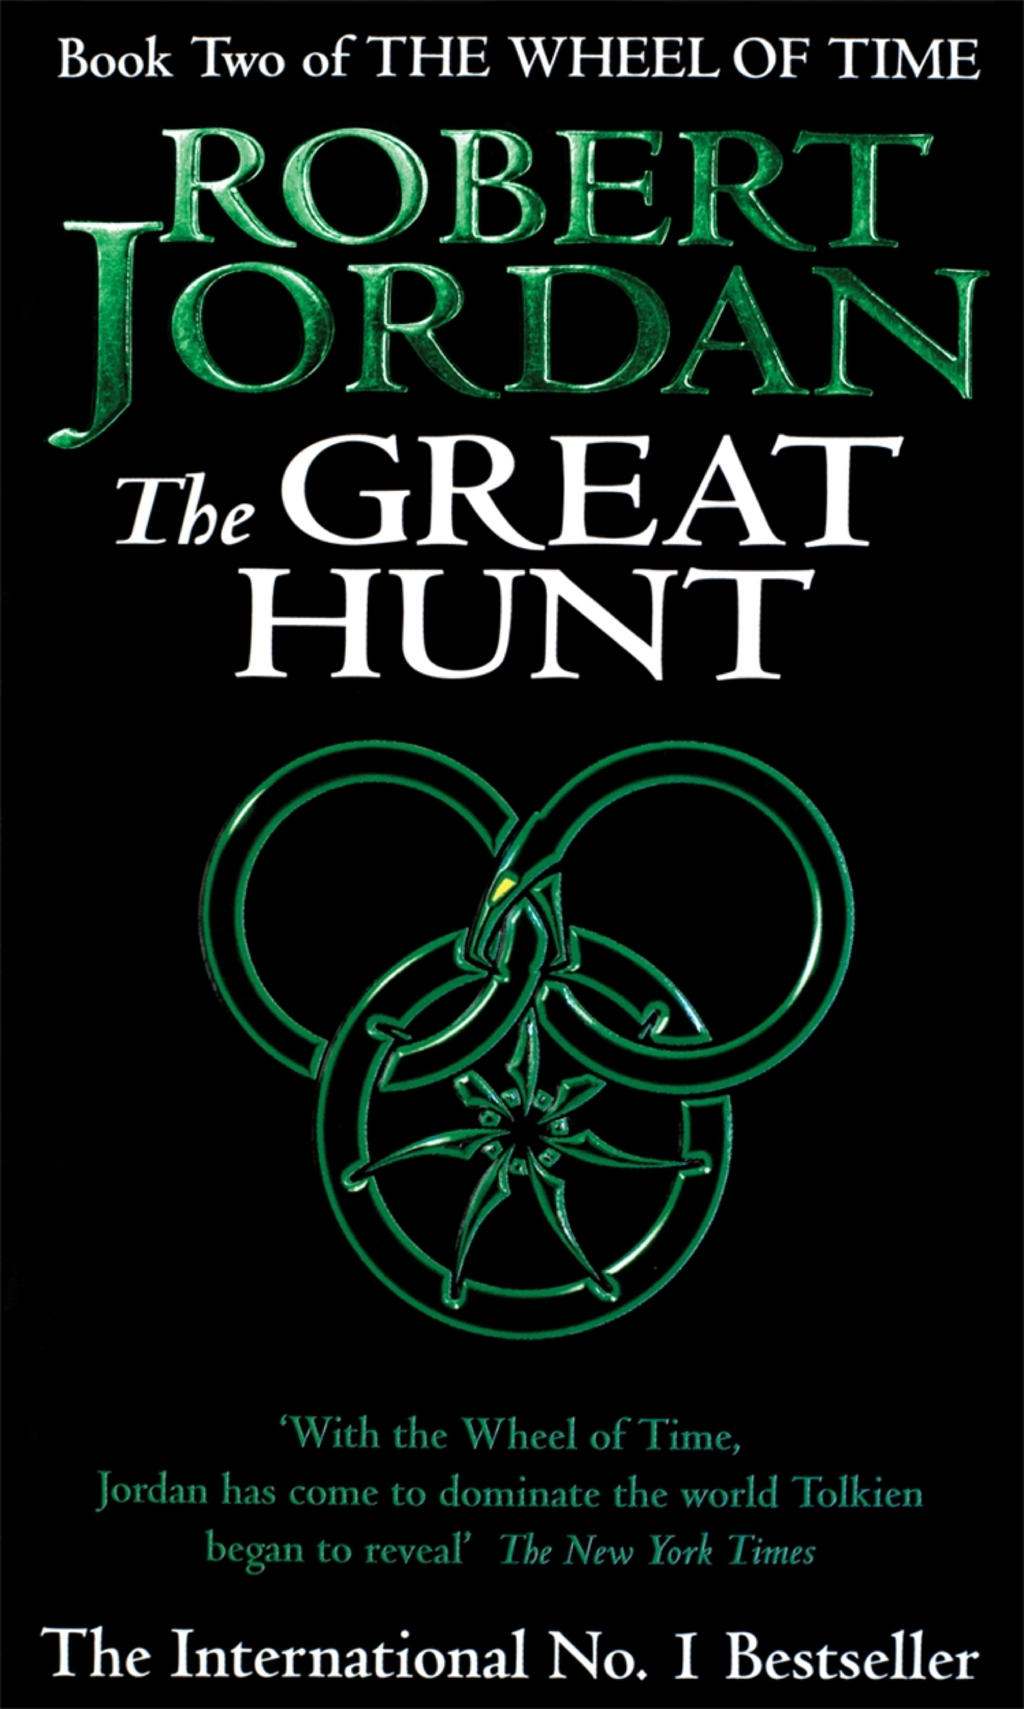 The Great Hunt The Wheel of Time: Book Two